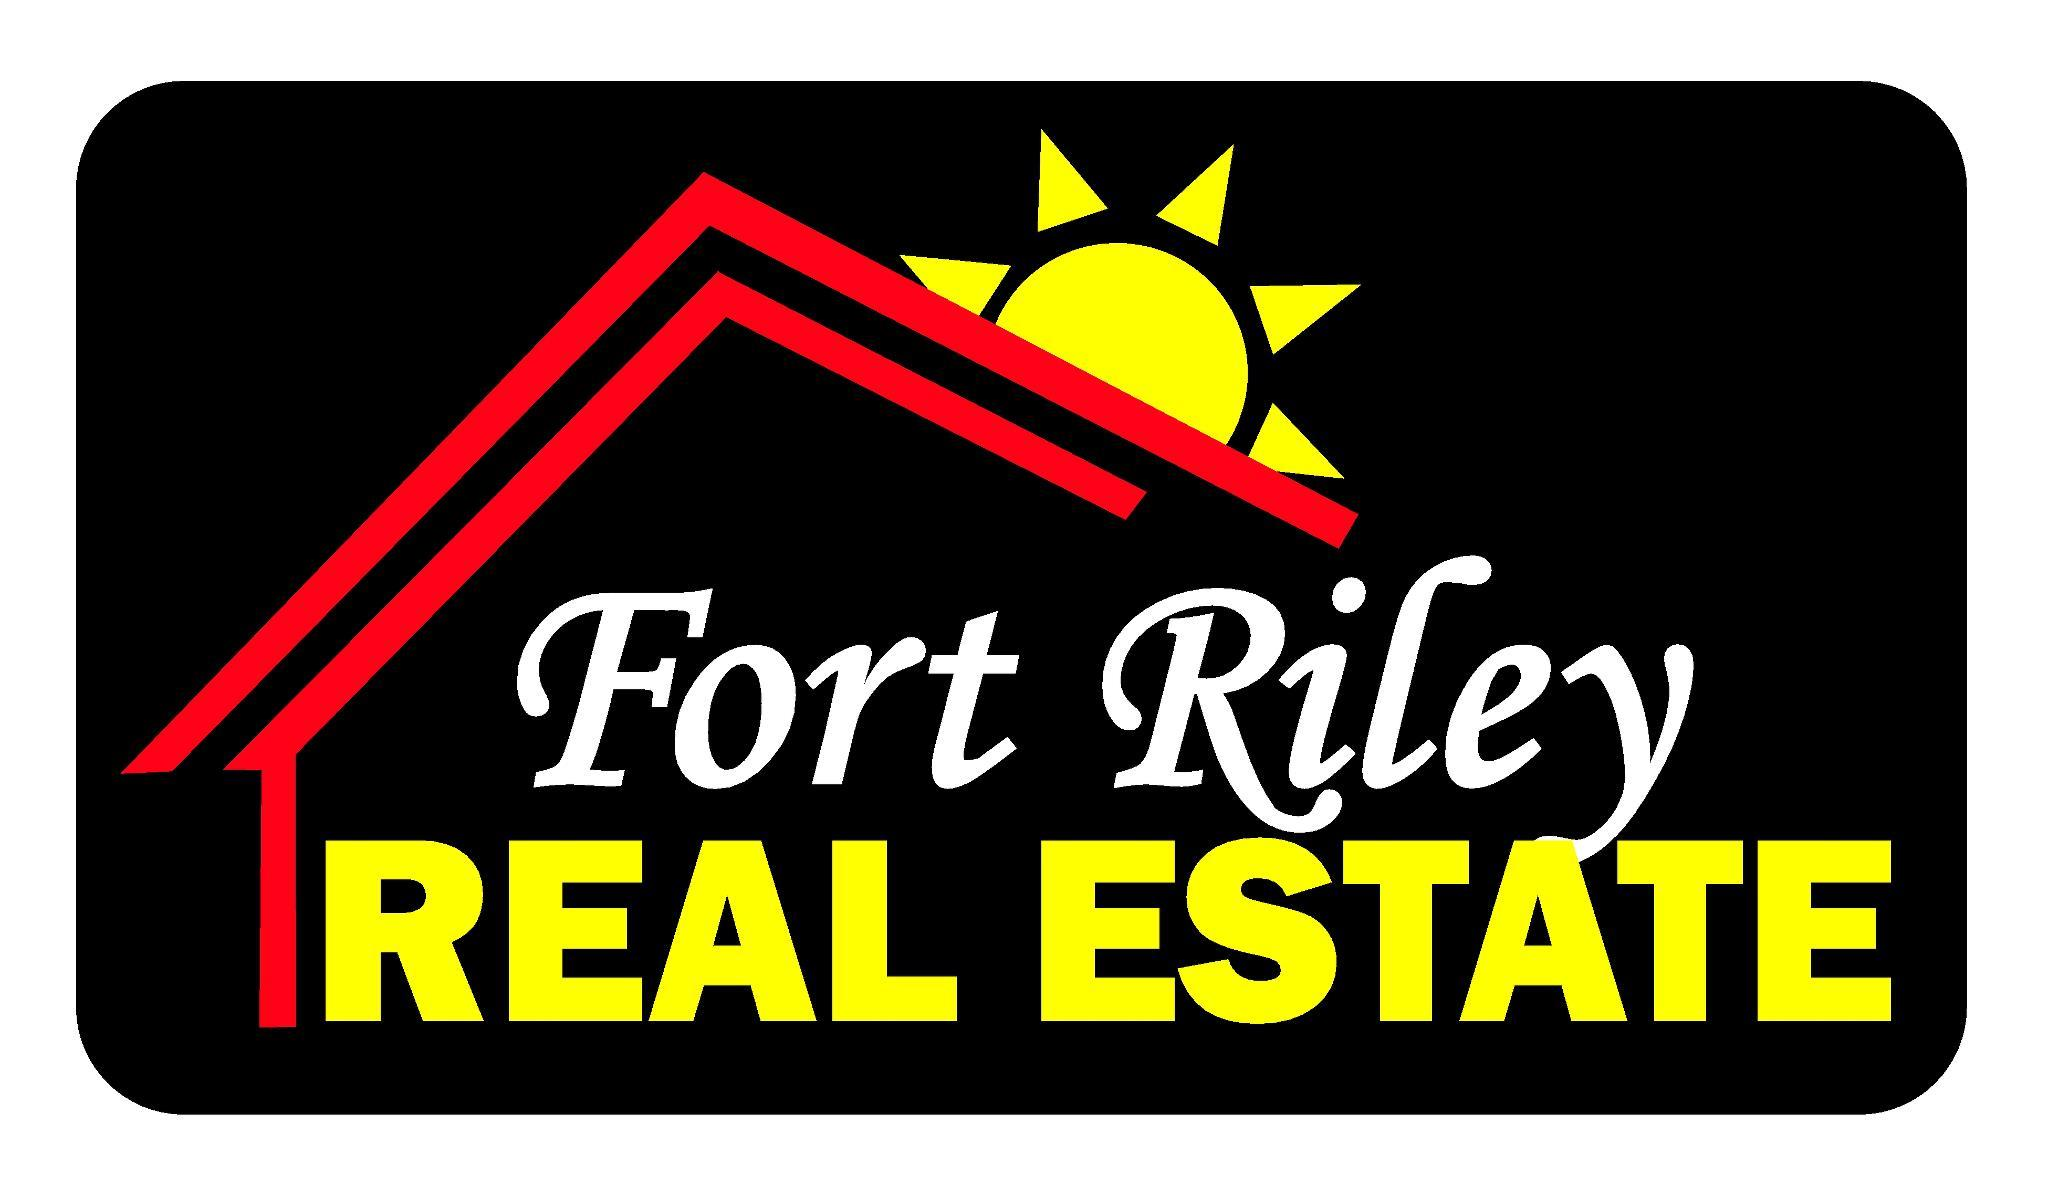 Fort Riley Real Estate